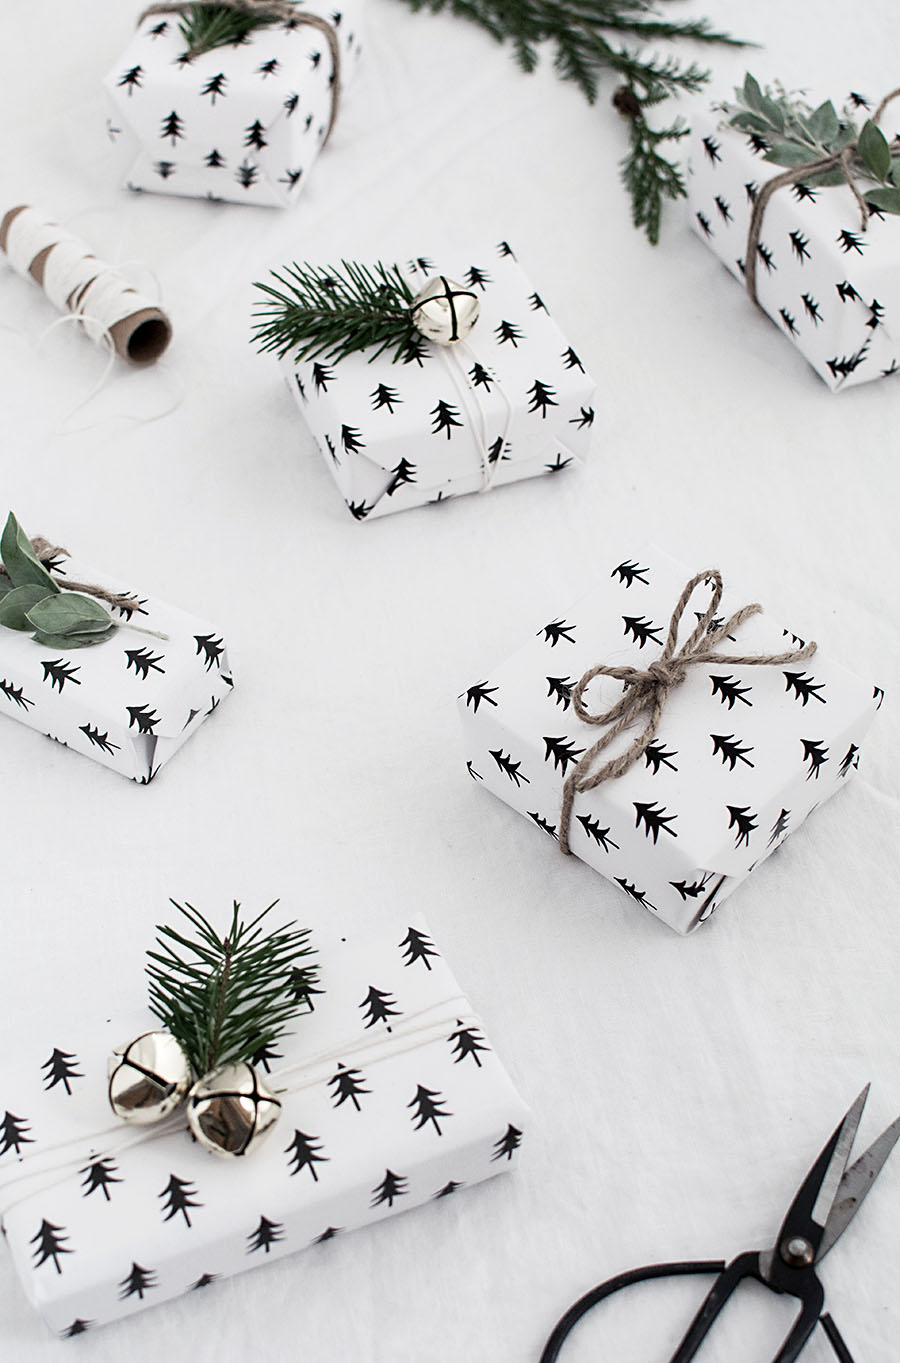 photo relating to Printable Christmas Wrapping Paper named Printable Xmas Wrapping Paper - Homey Oh My